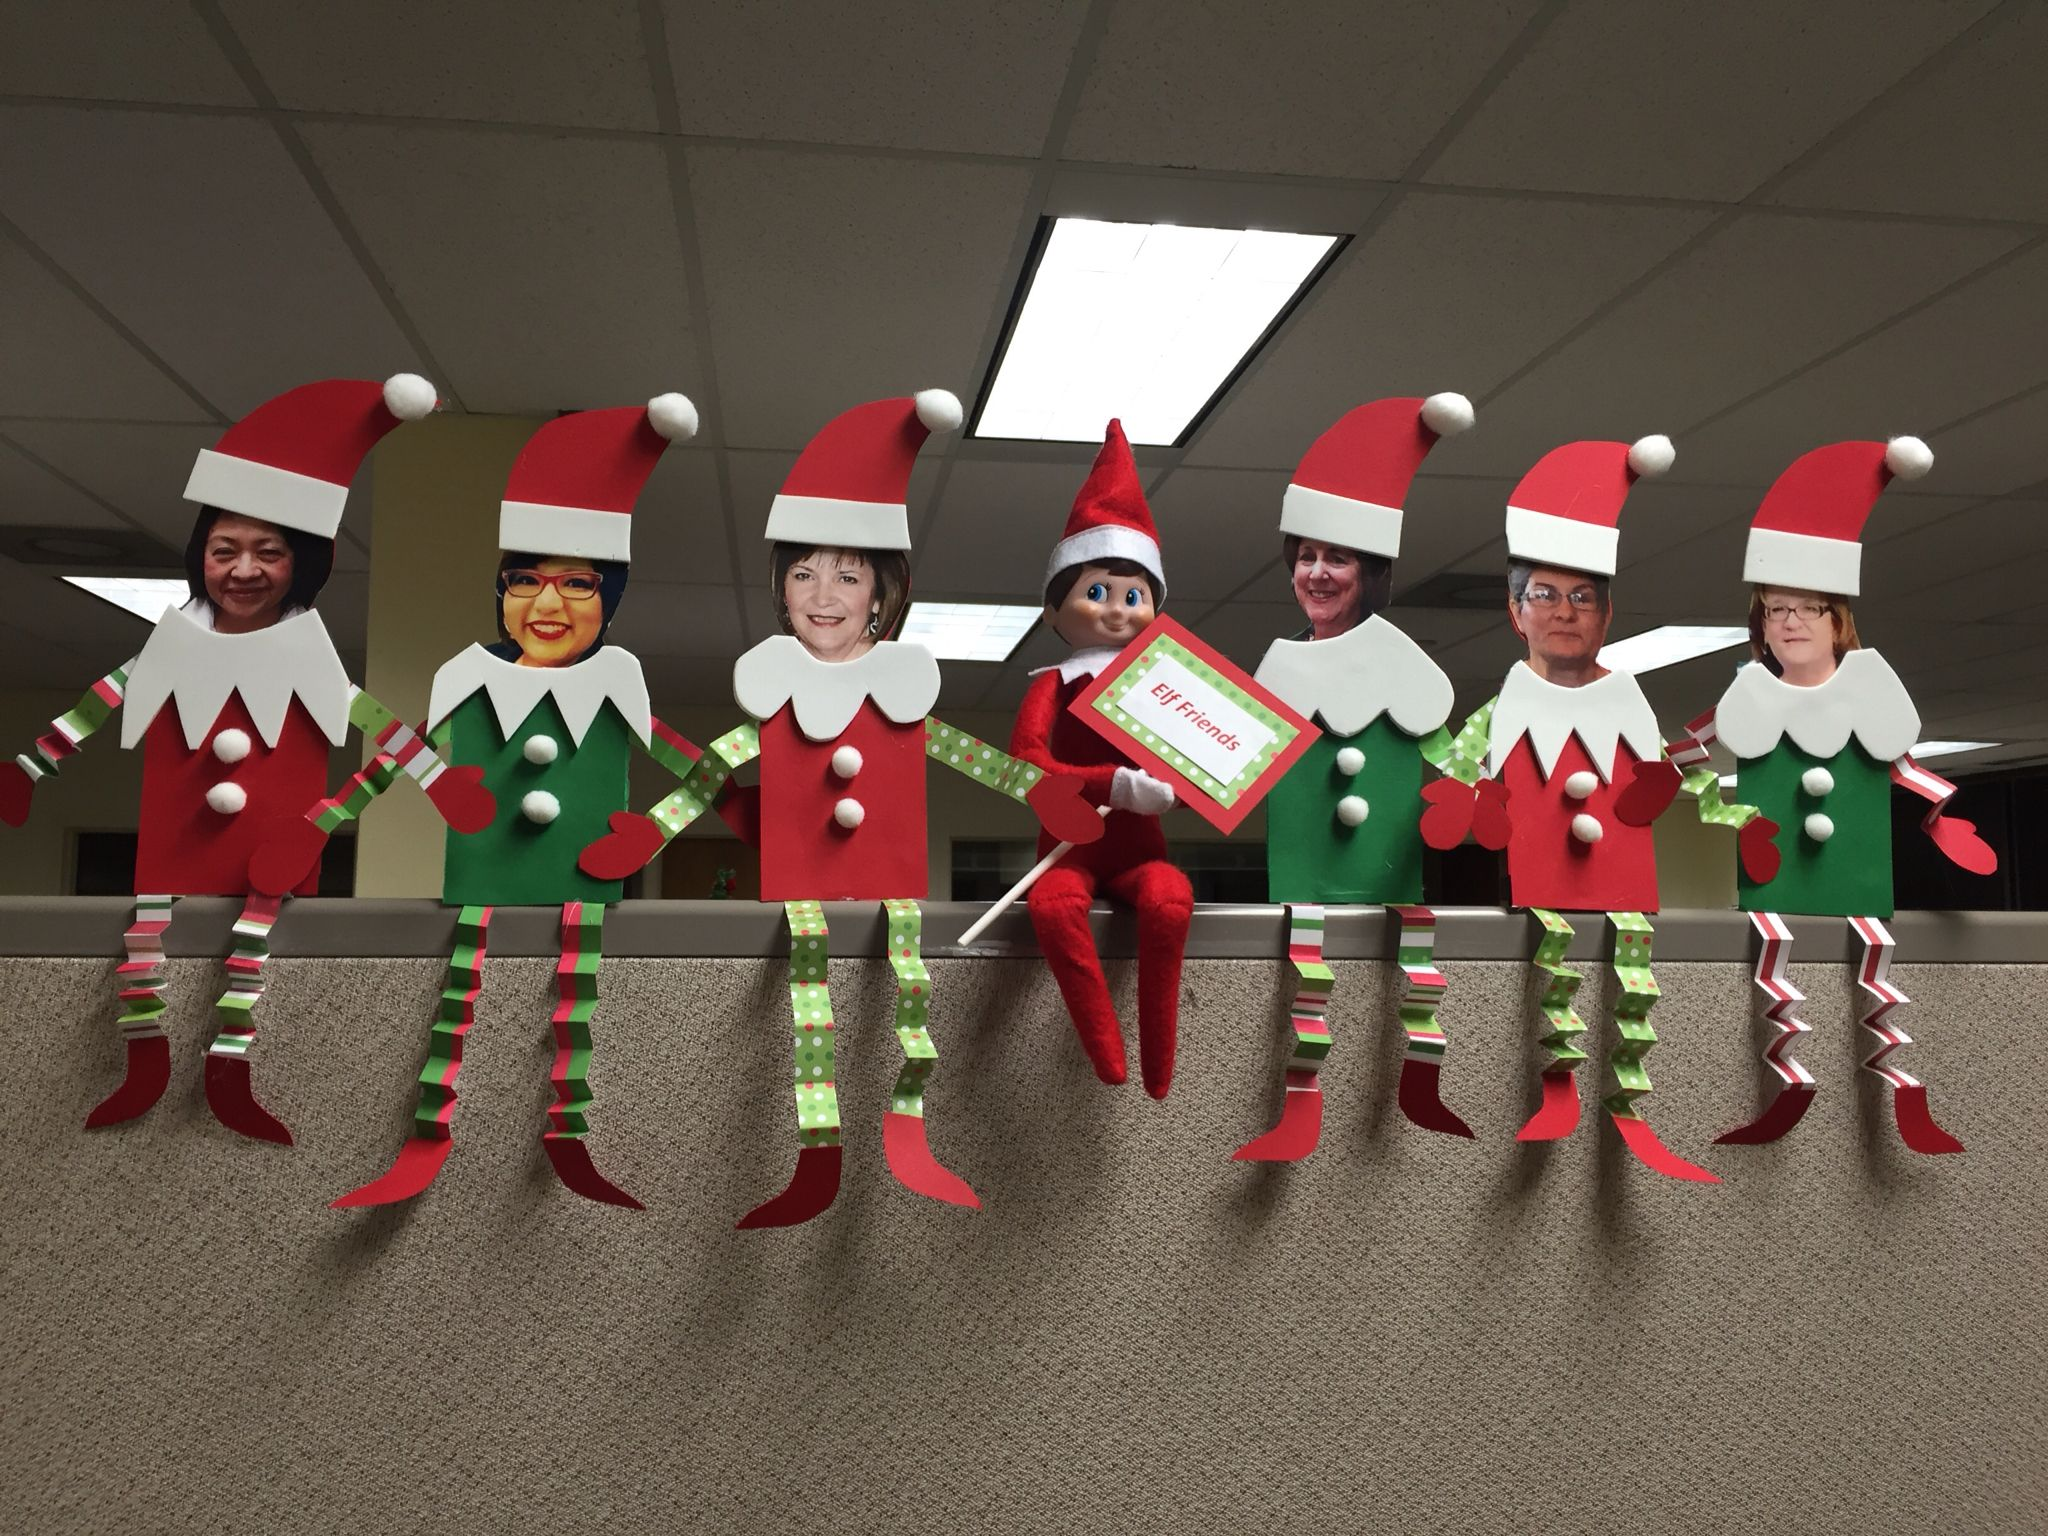 elf on the shelf at the office elf friends decoration noel christmas decoration - Office Christmas Party Decorations